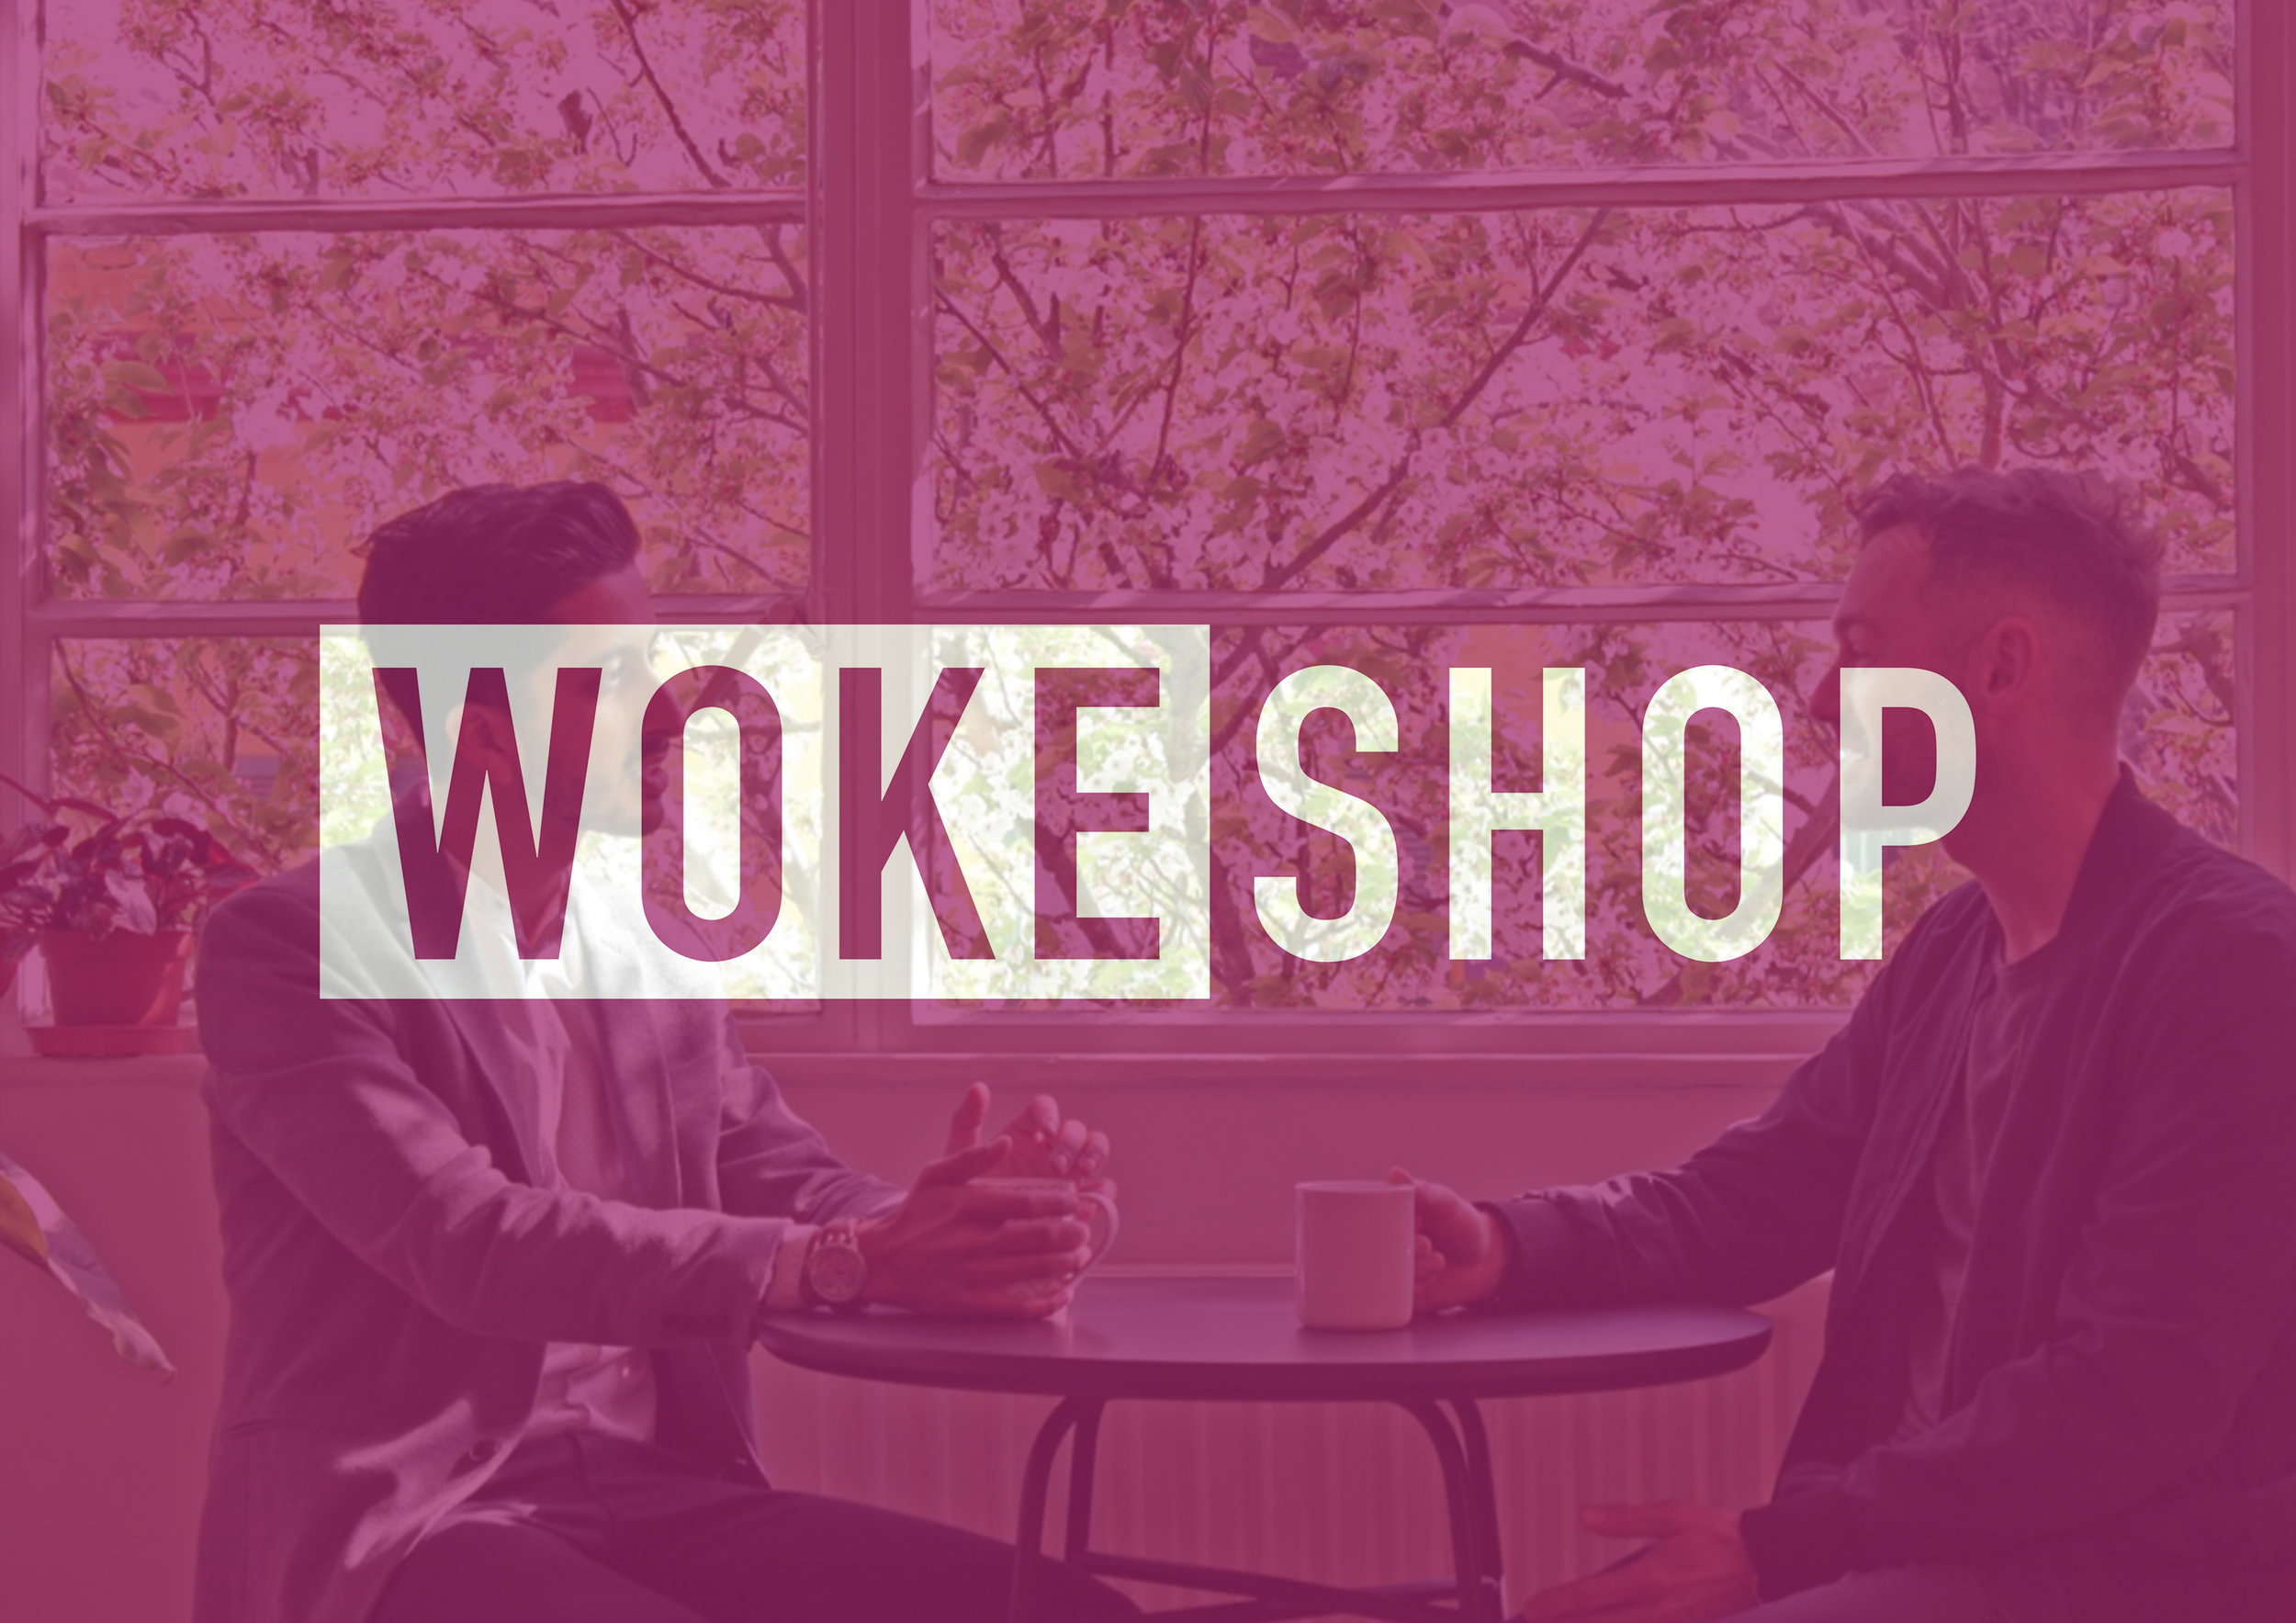 wokeshop a4 photo background.jpg